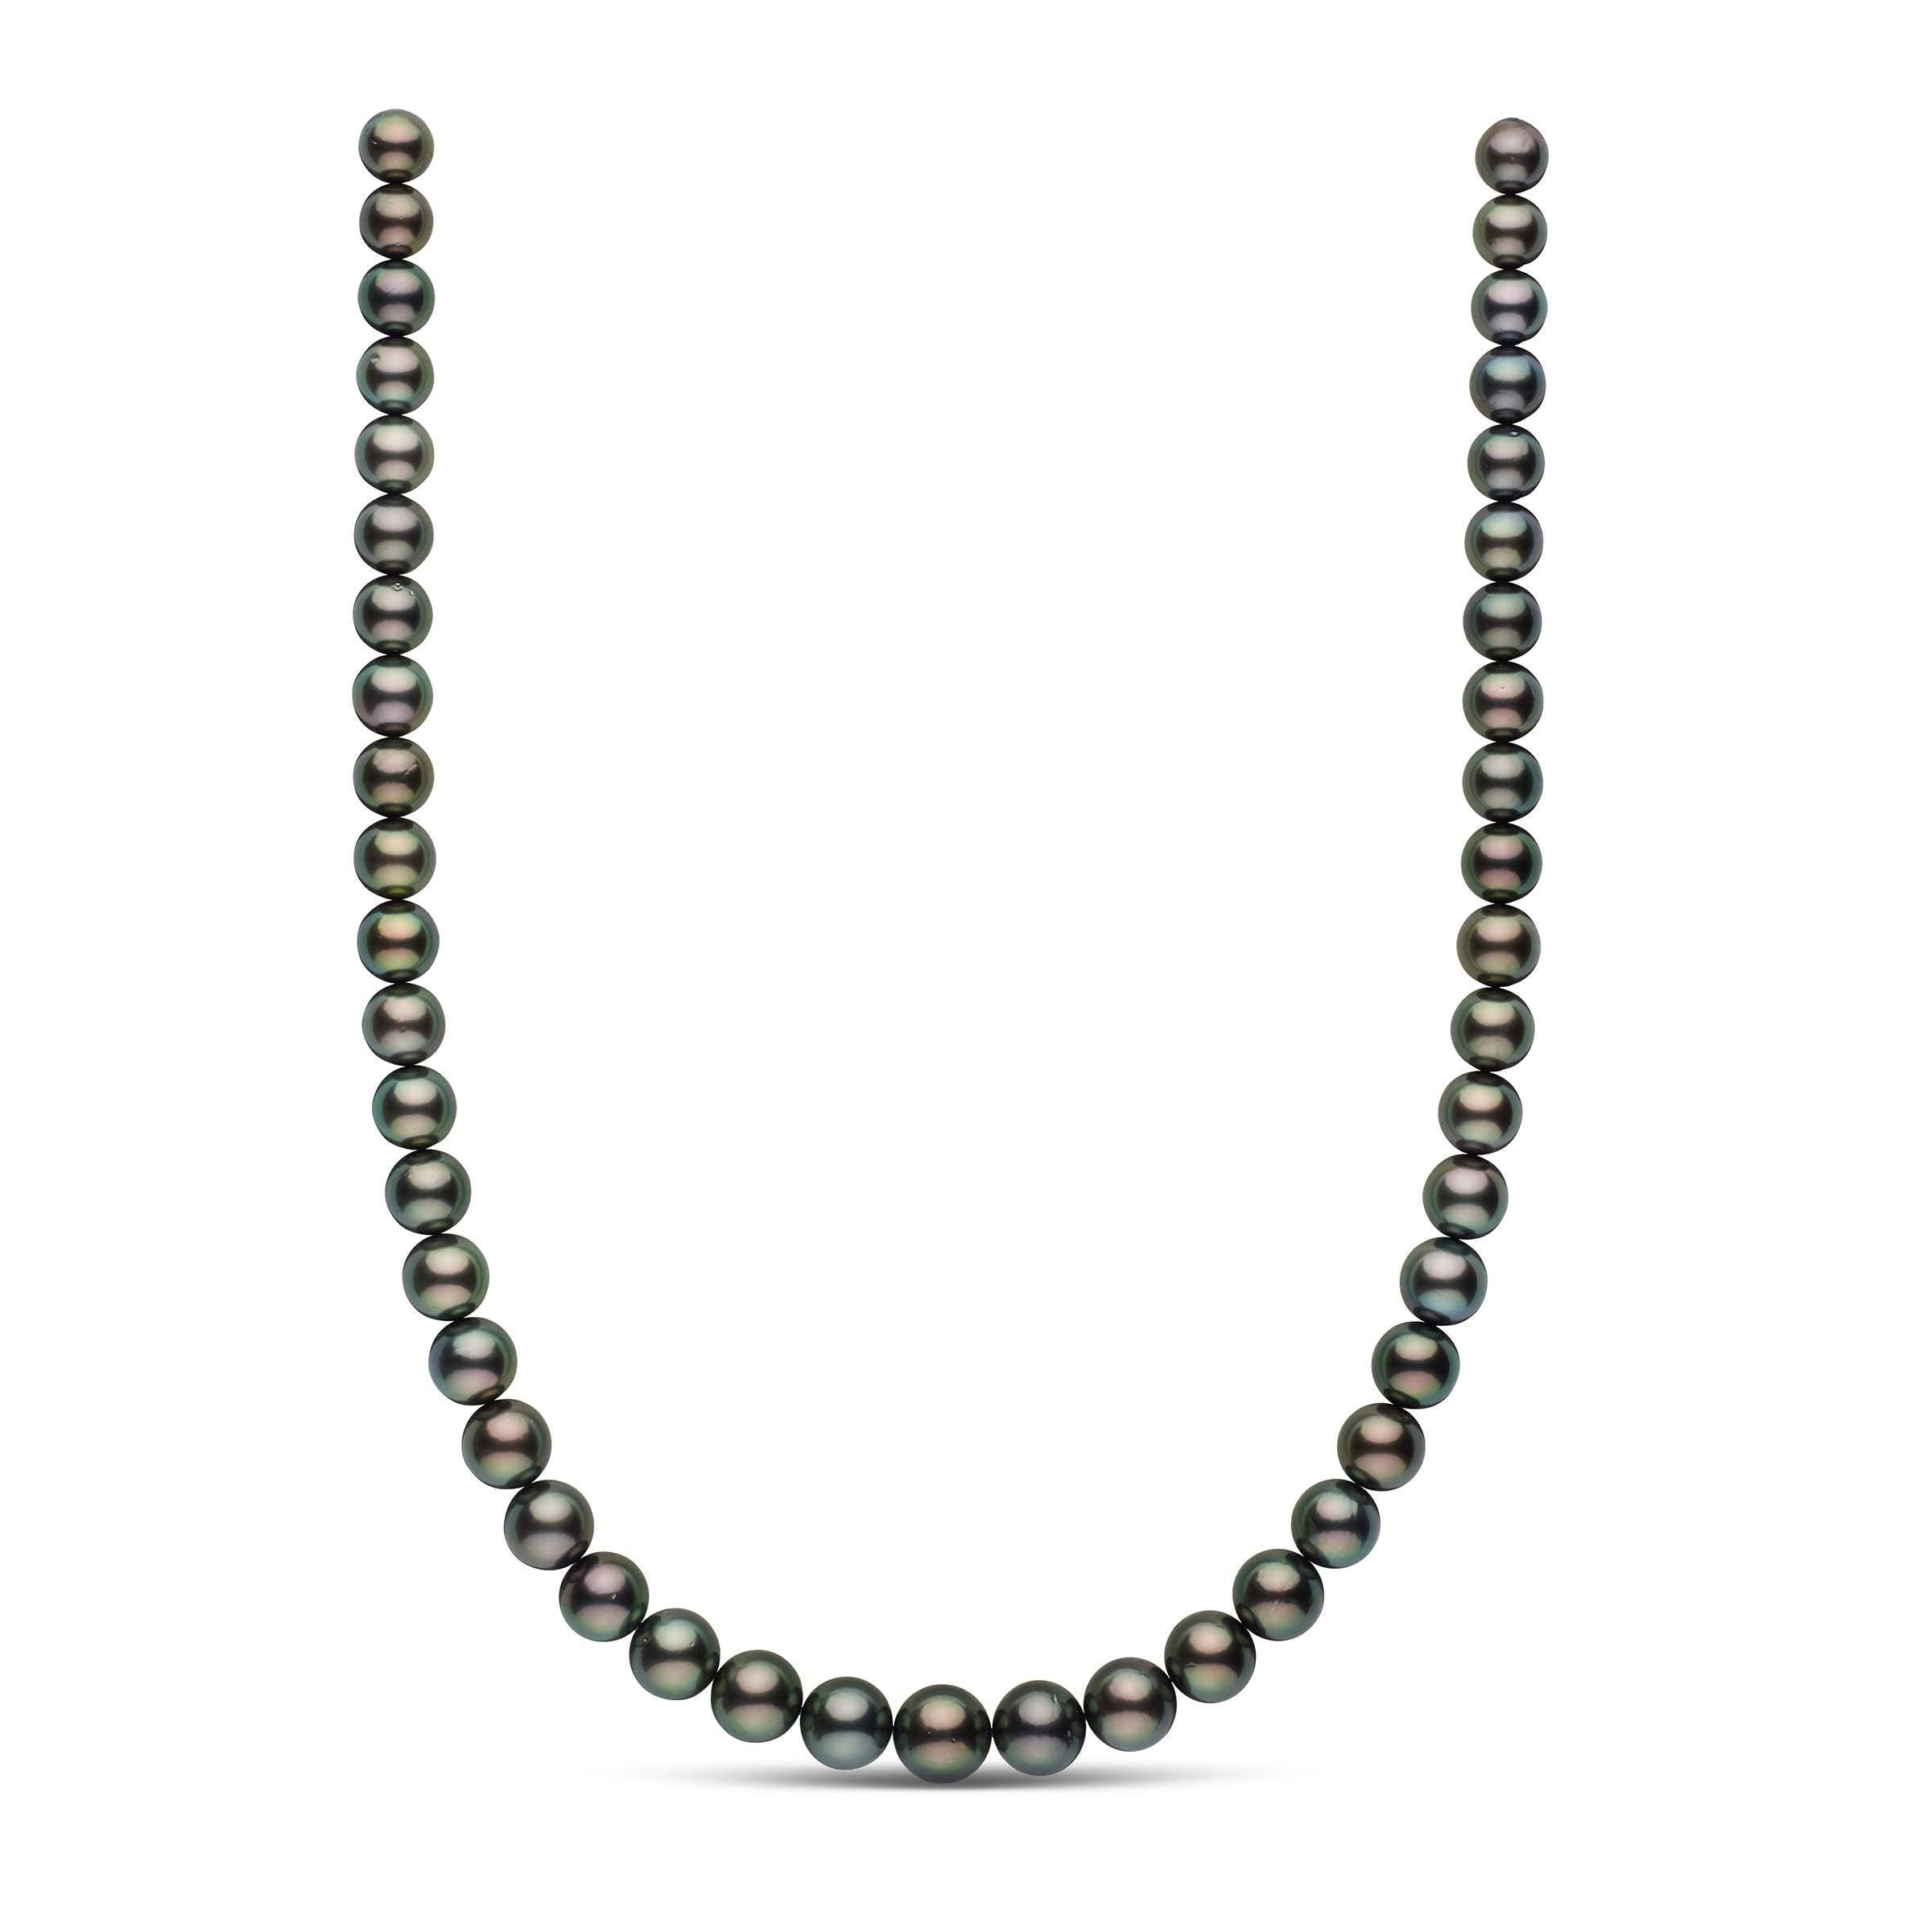 8.1-10.9 mm AA+/AAA Round Tahitian Pearl Necklace